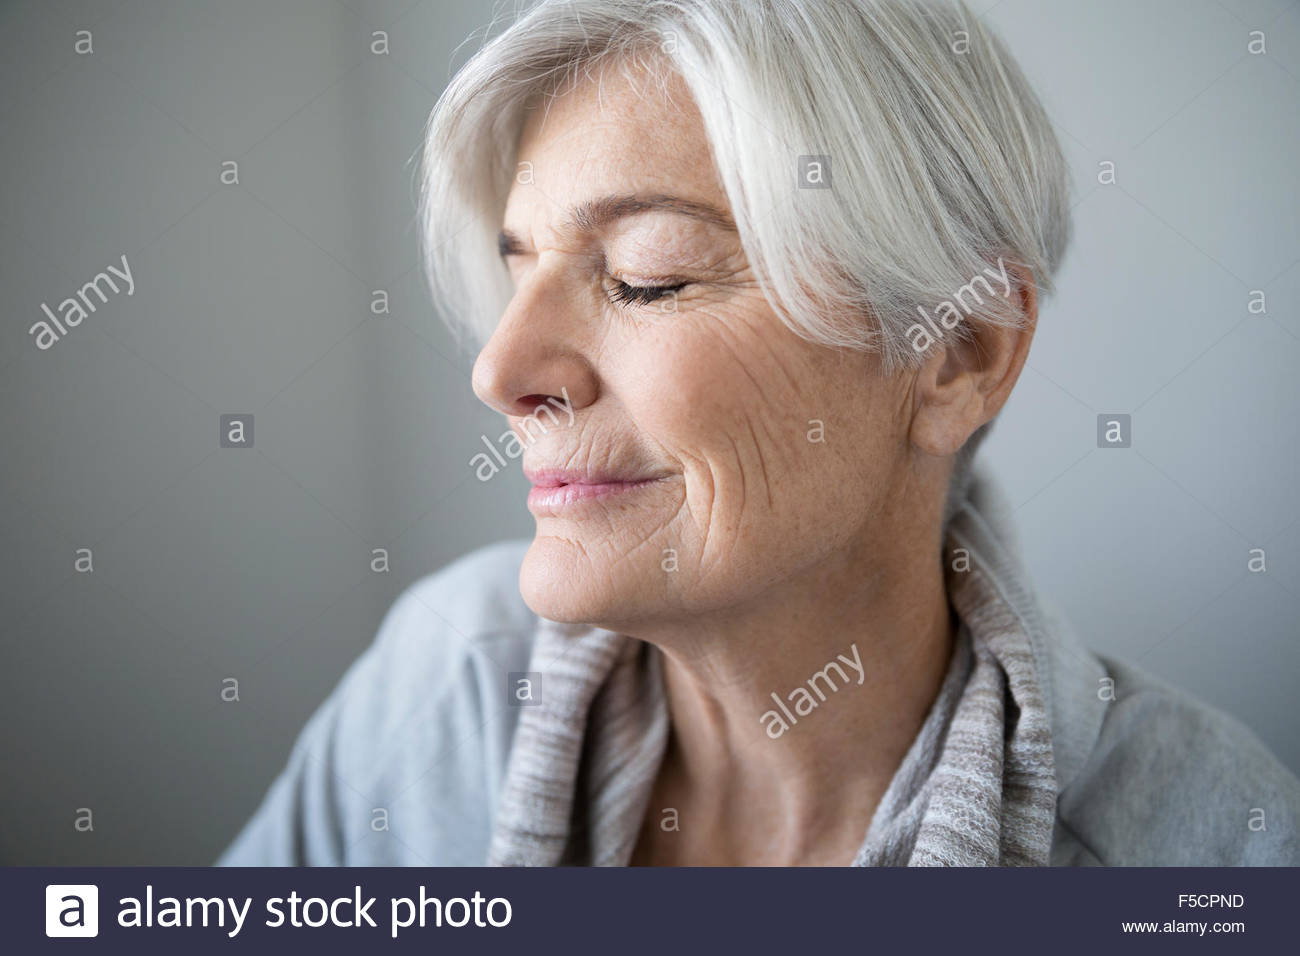 Sereine Portrait senior woman with eyes closed Photo Stock